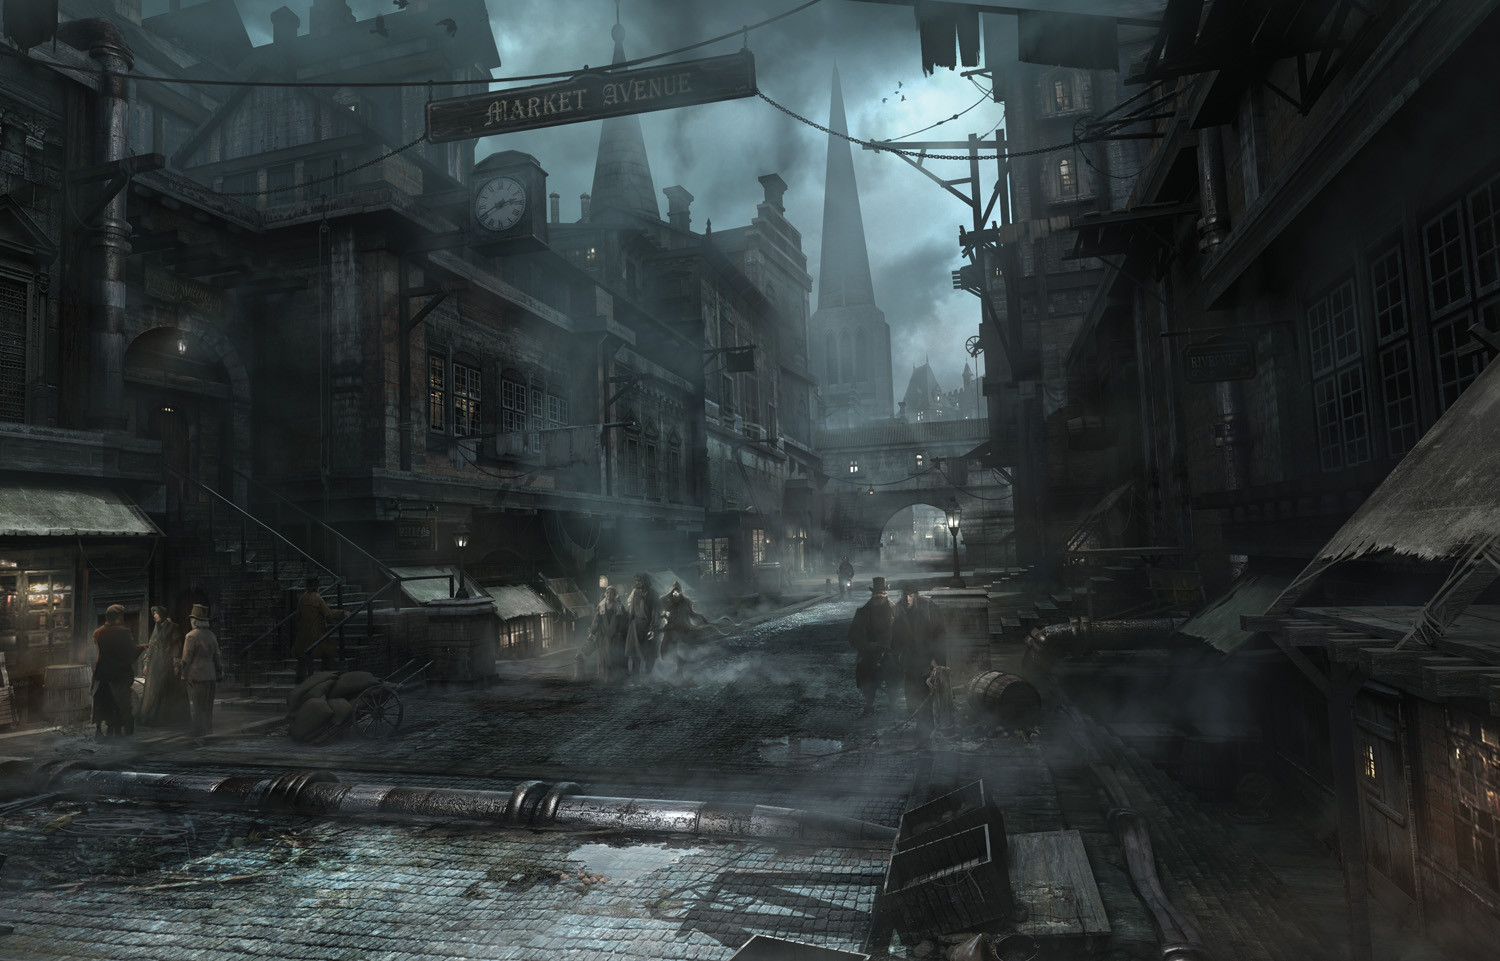 How The Art Of Thief Became The Art Of Thief Polygon